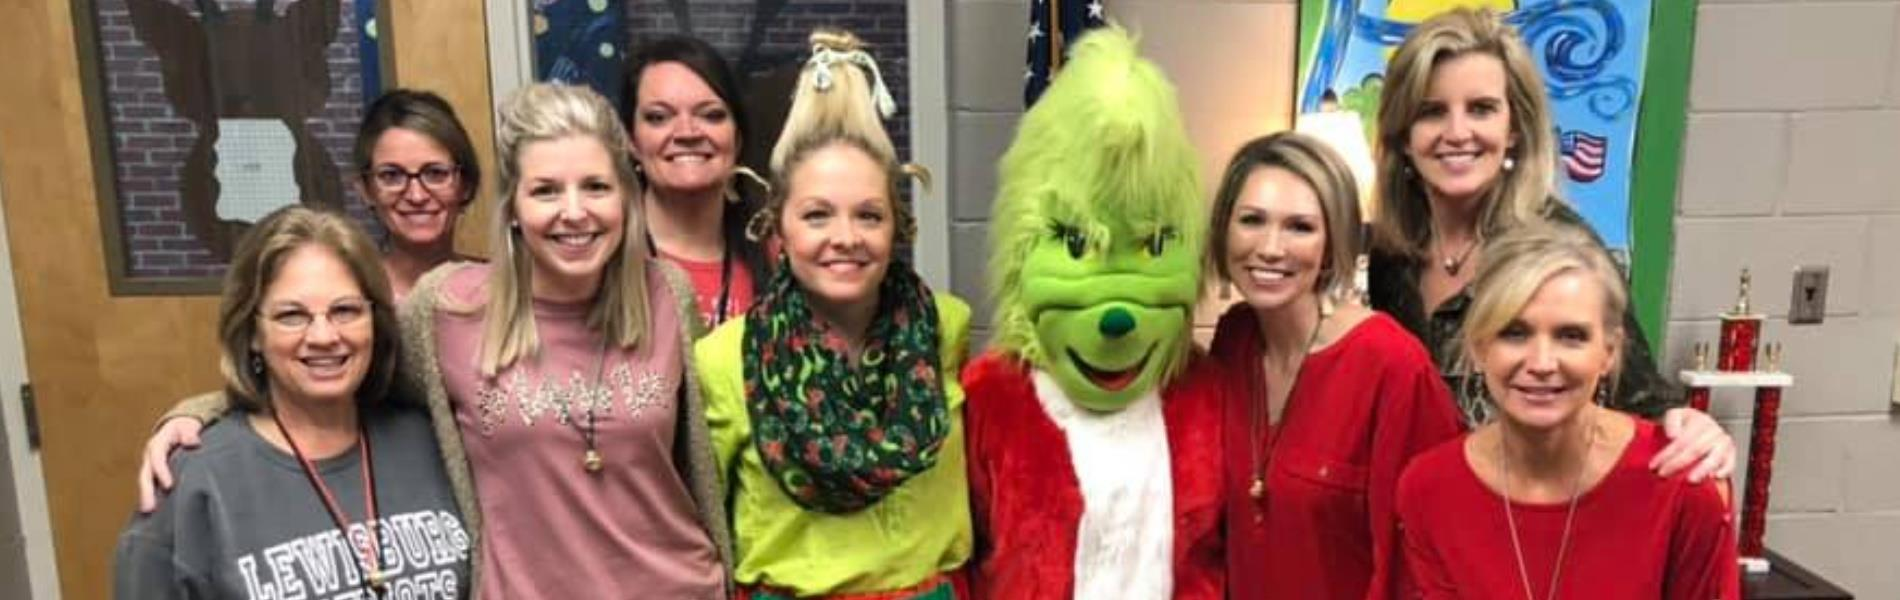 Group of ladies with the Grinch for Christmas